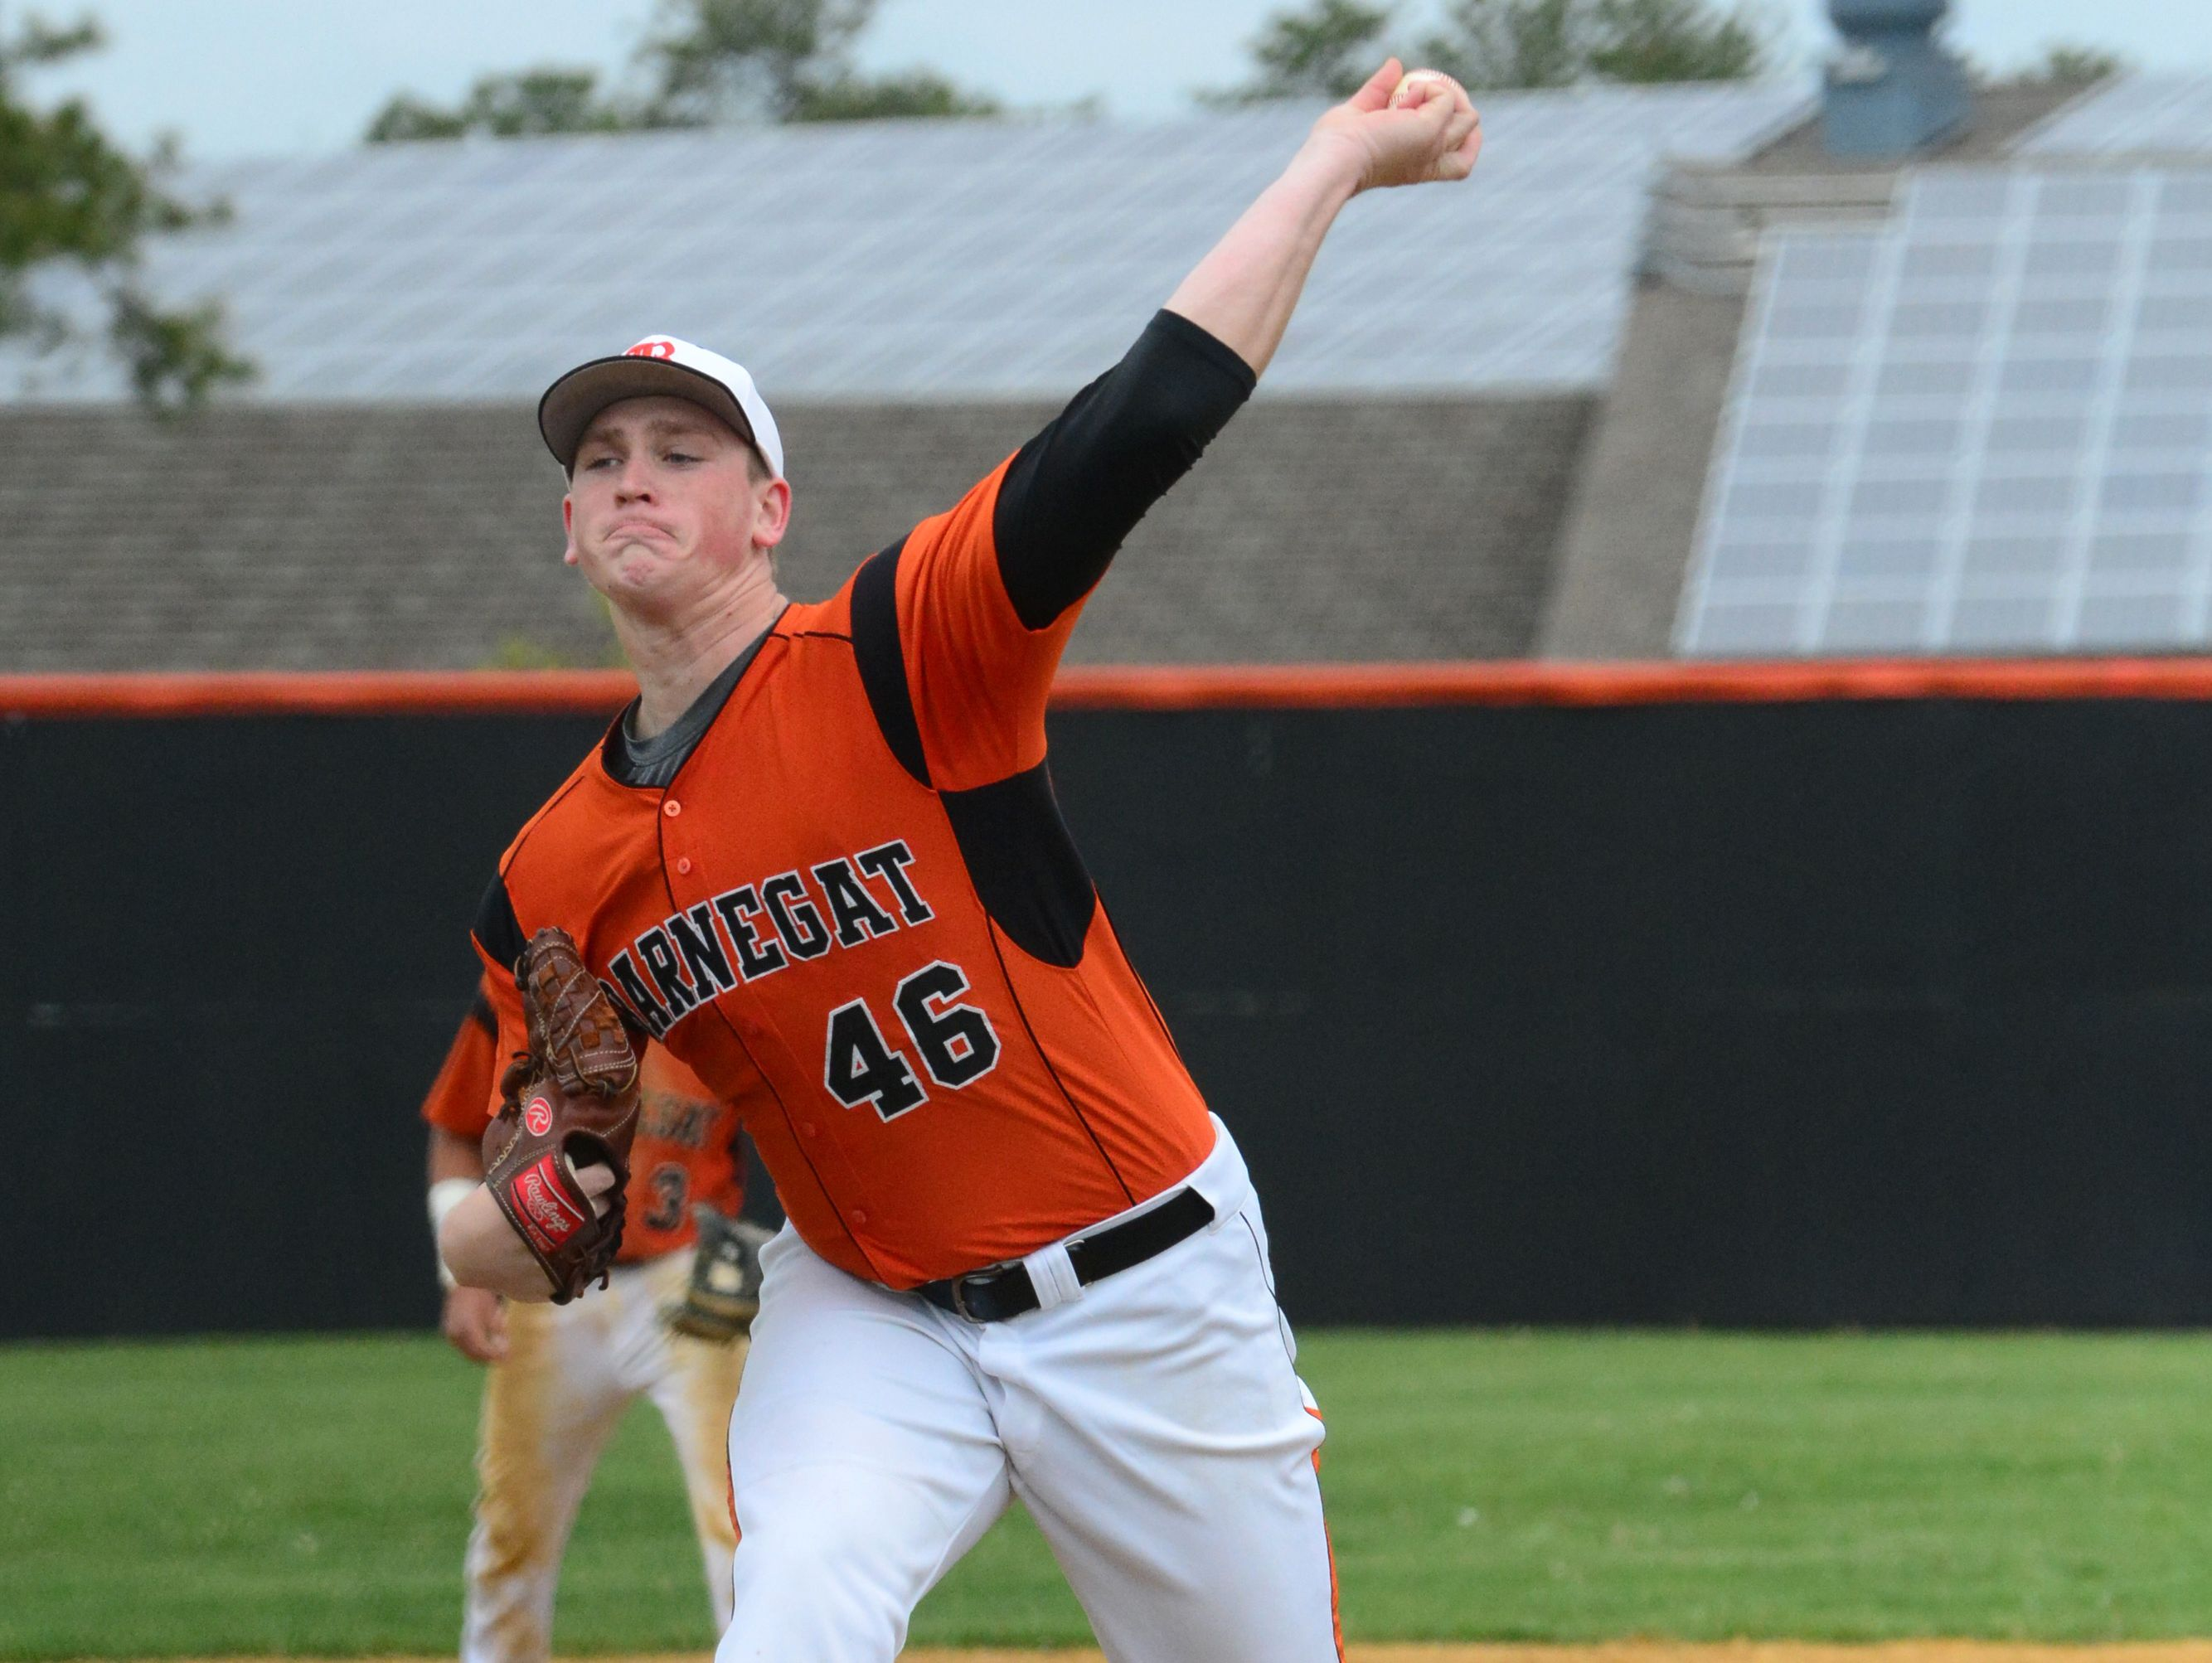 Barnegat pitcher Jason Groome throws against Pinelands in the Ocean County Baseball Tournament on Saturday.